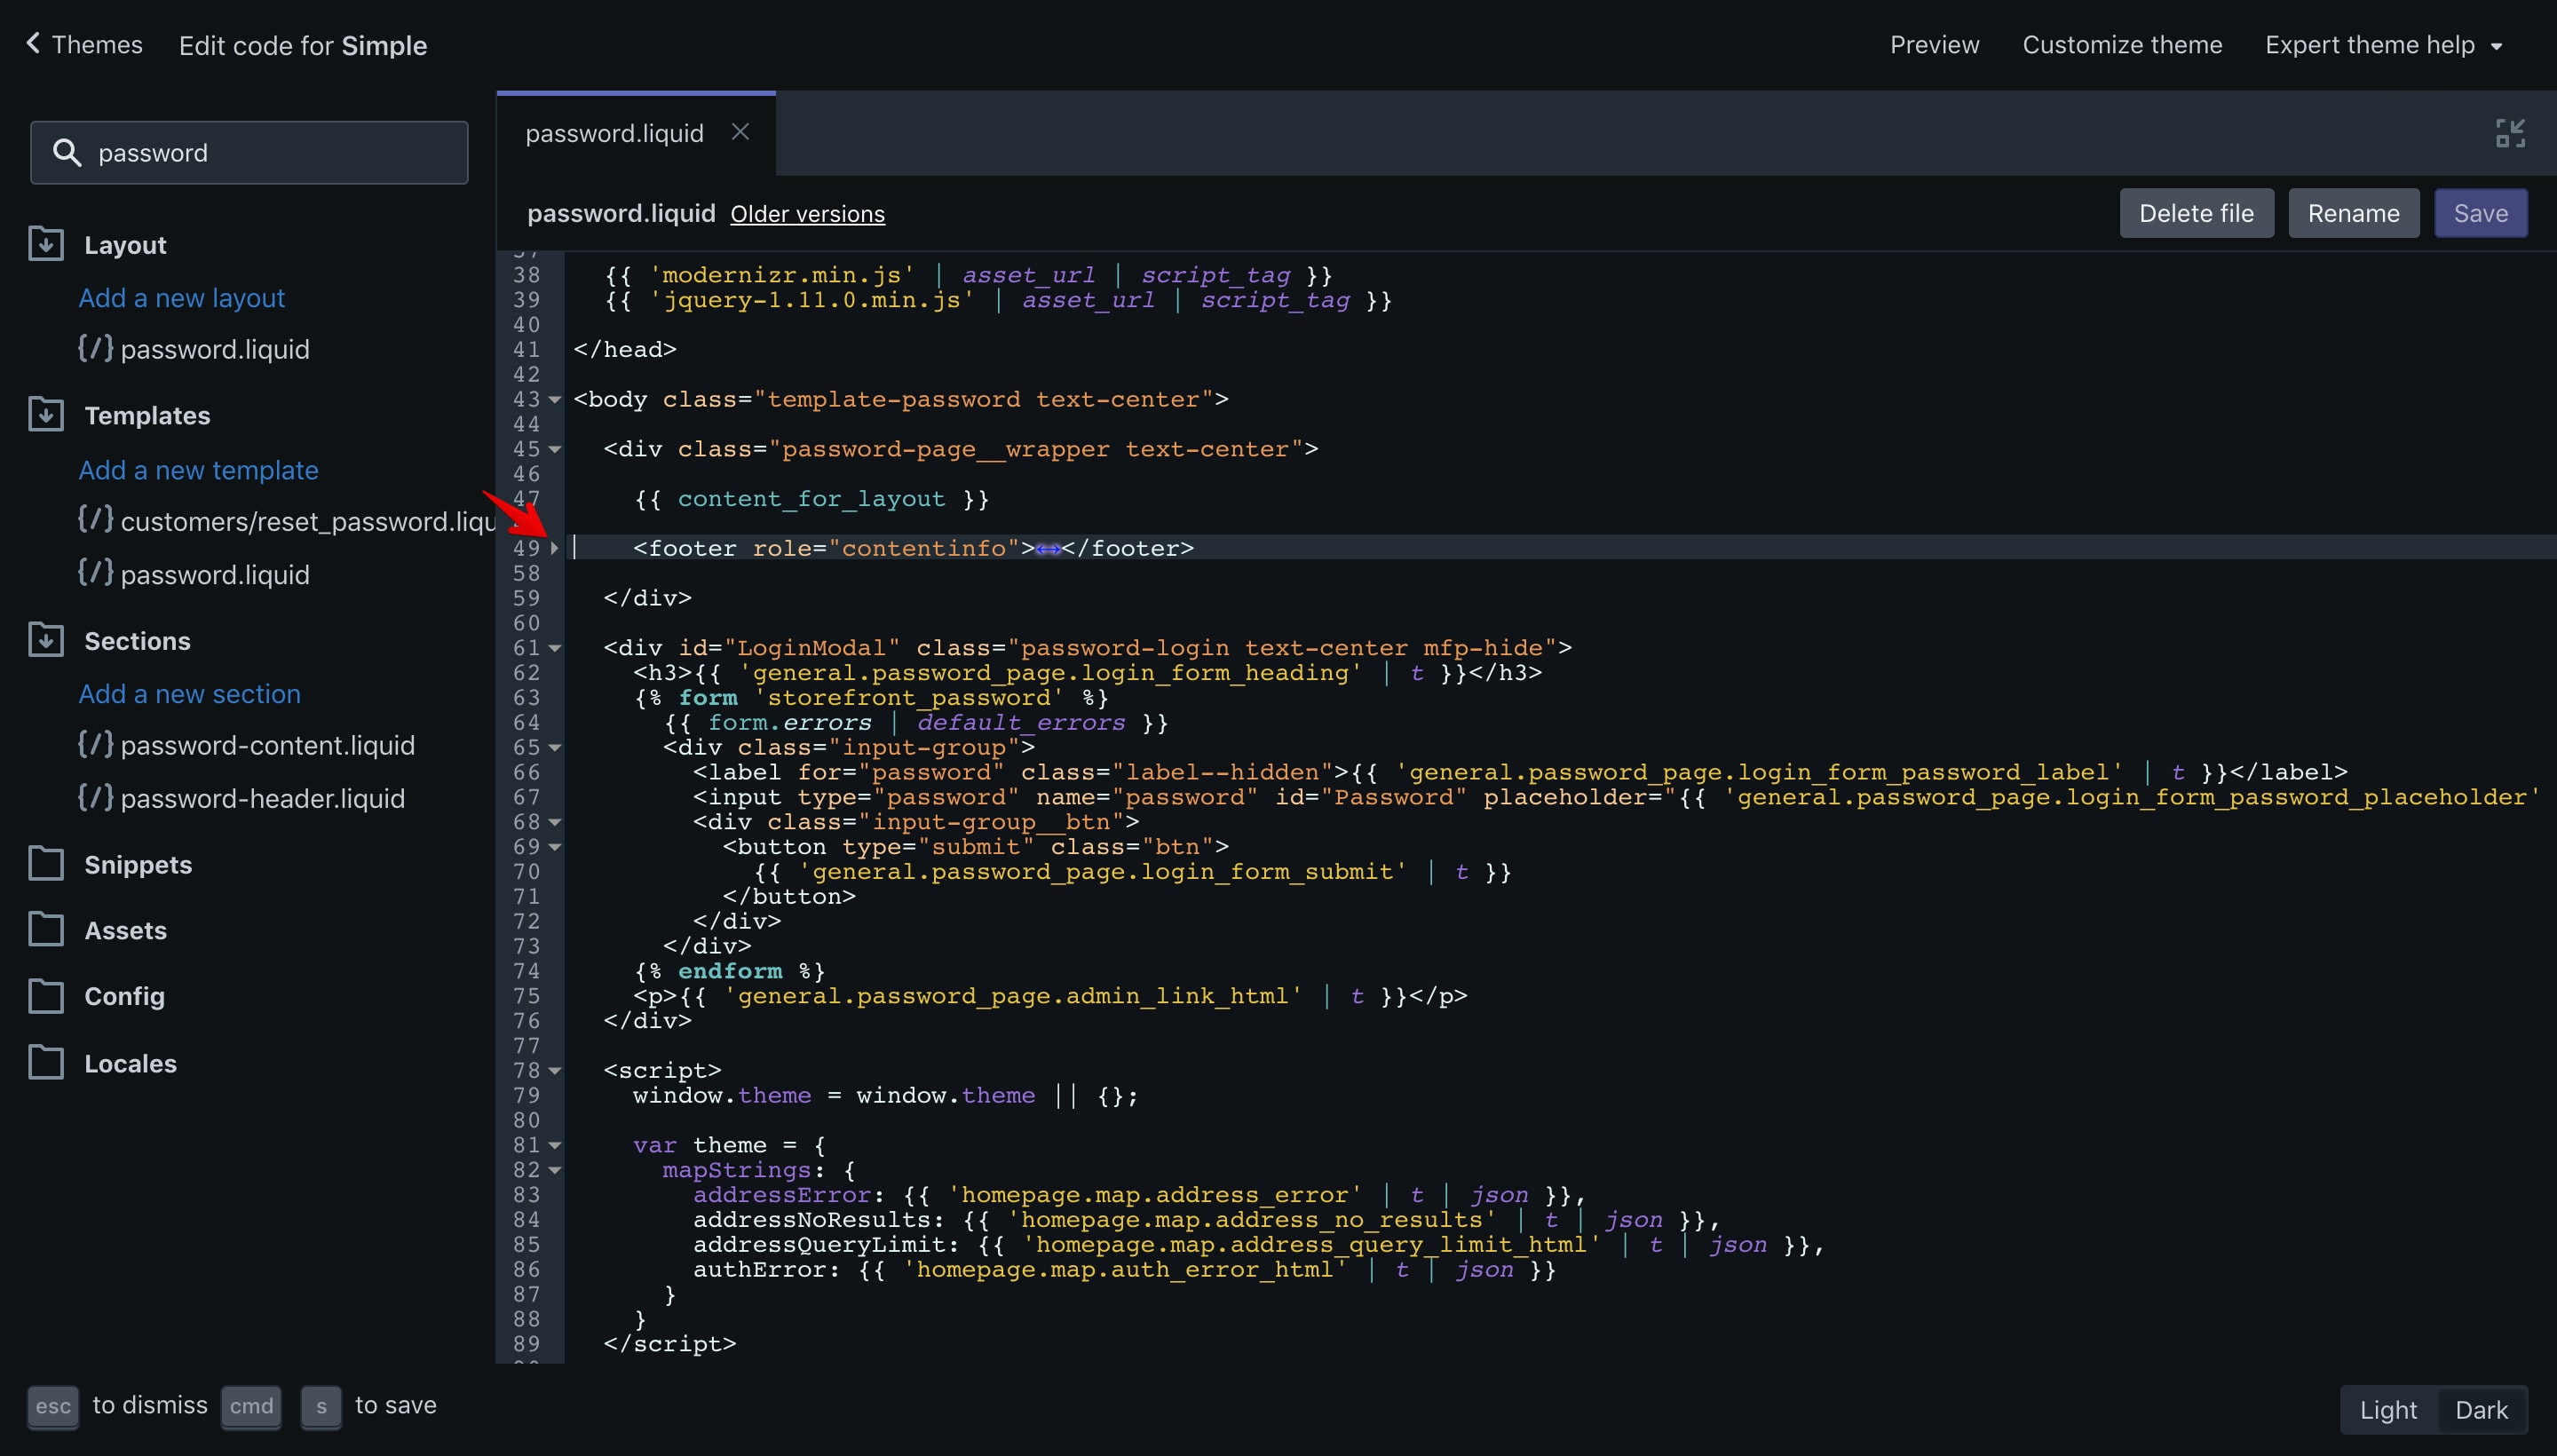 Simple theme copyright code selection in the code editor.